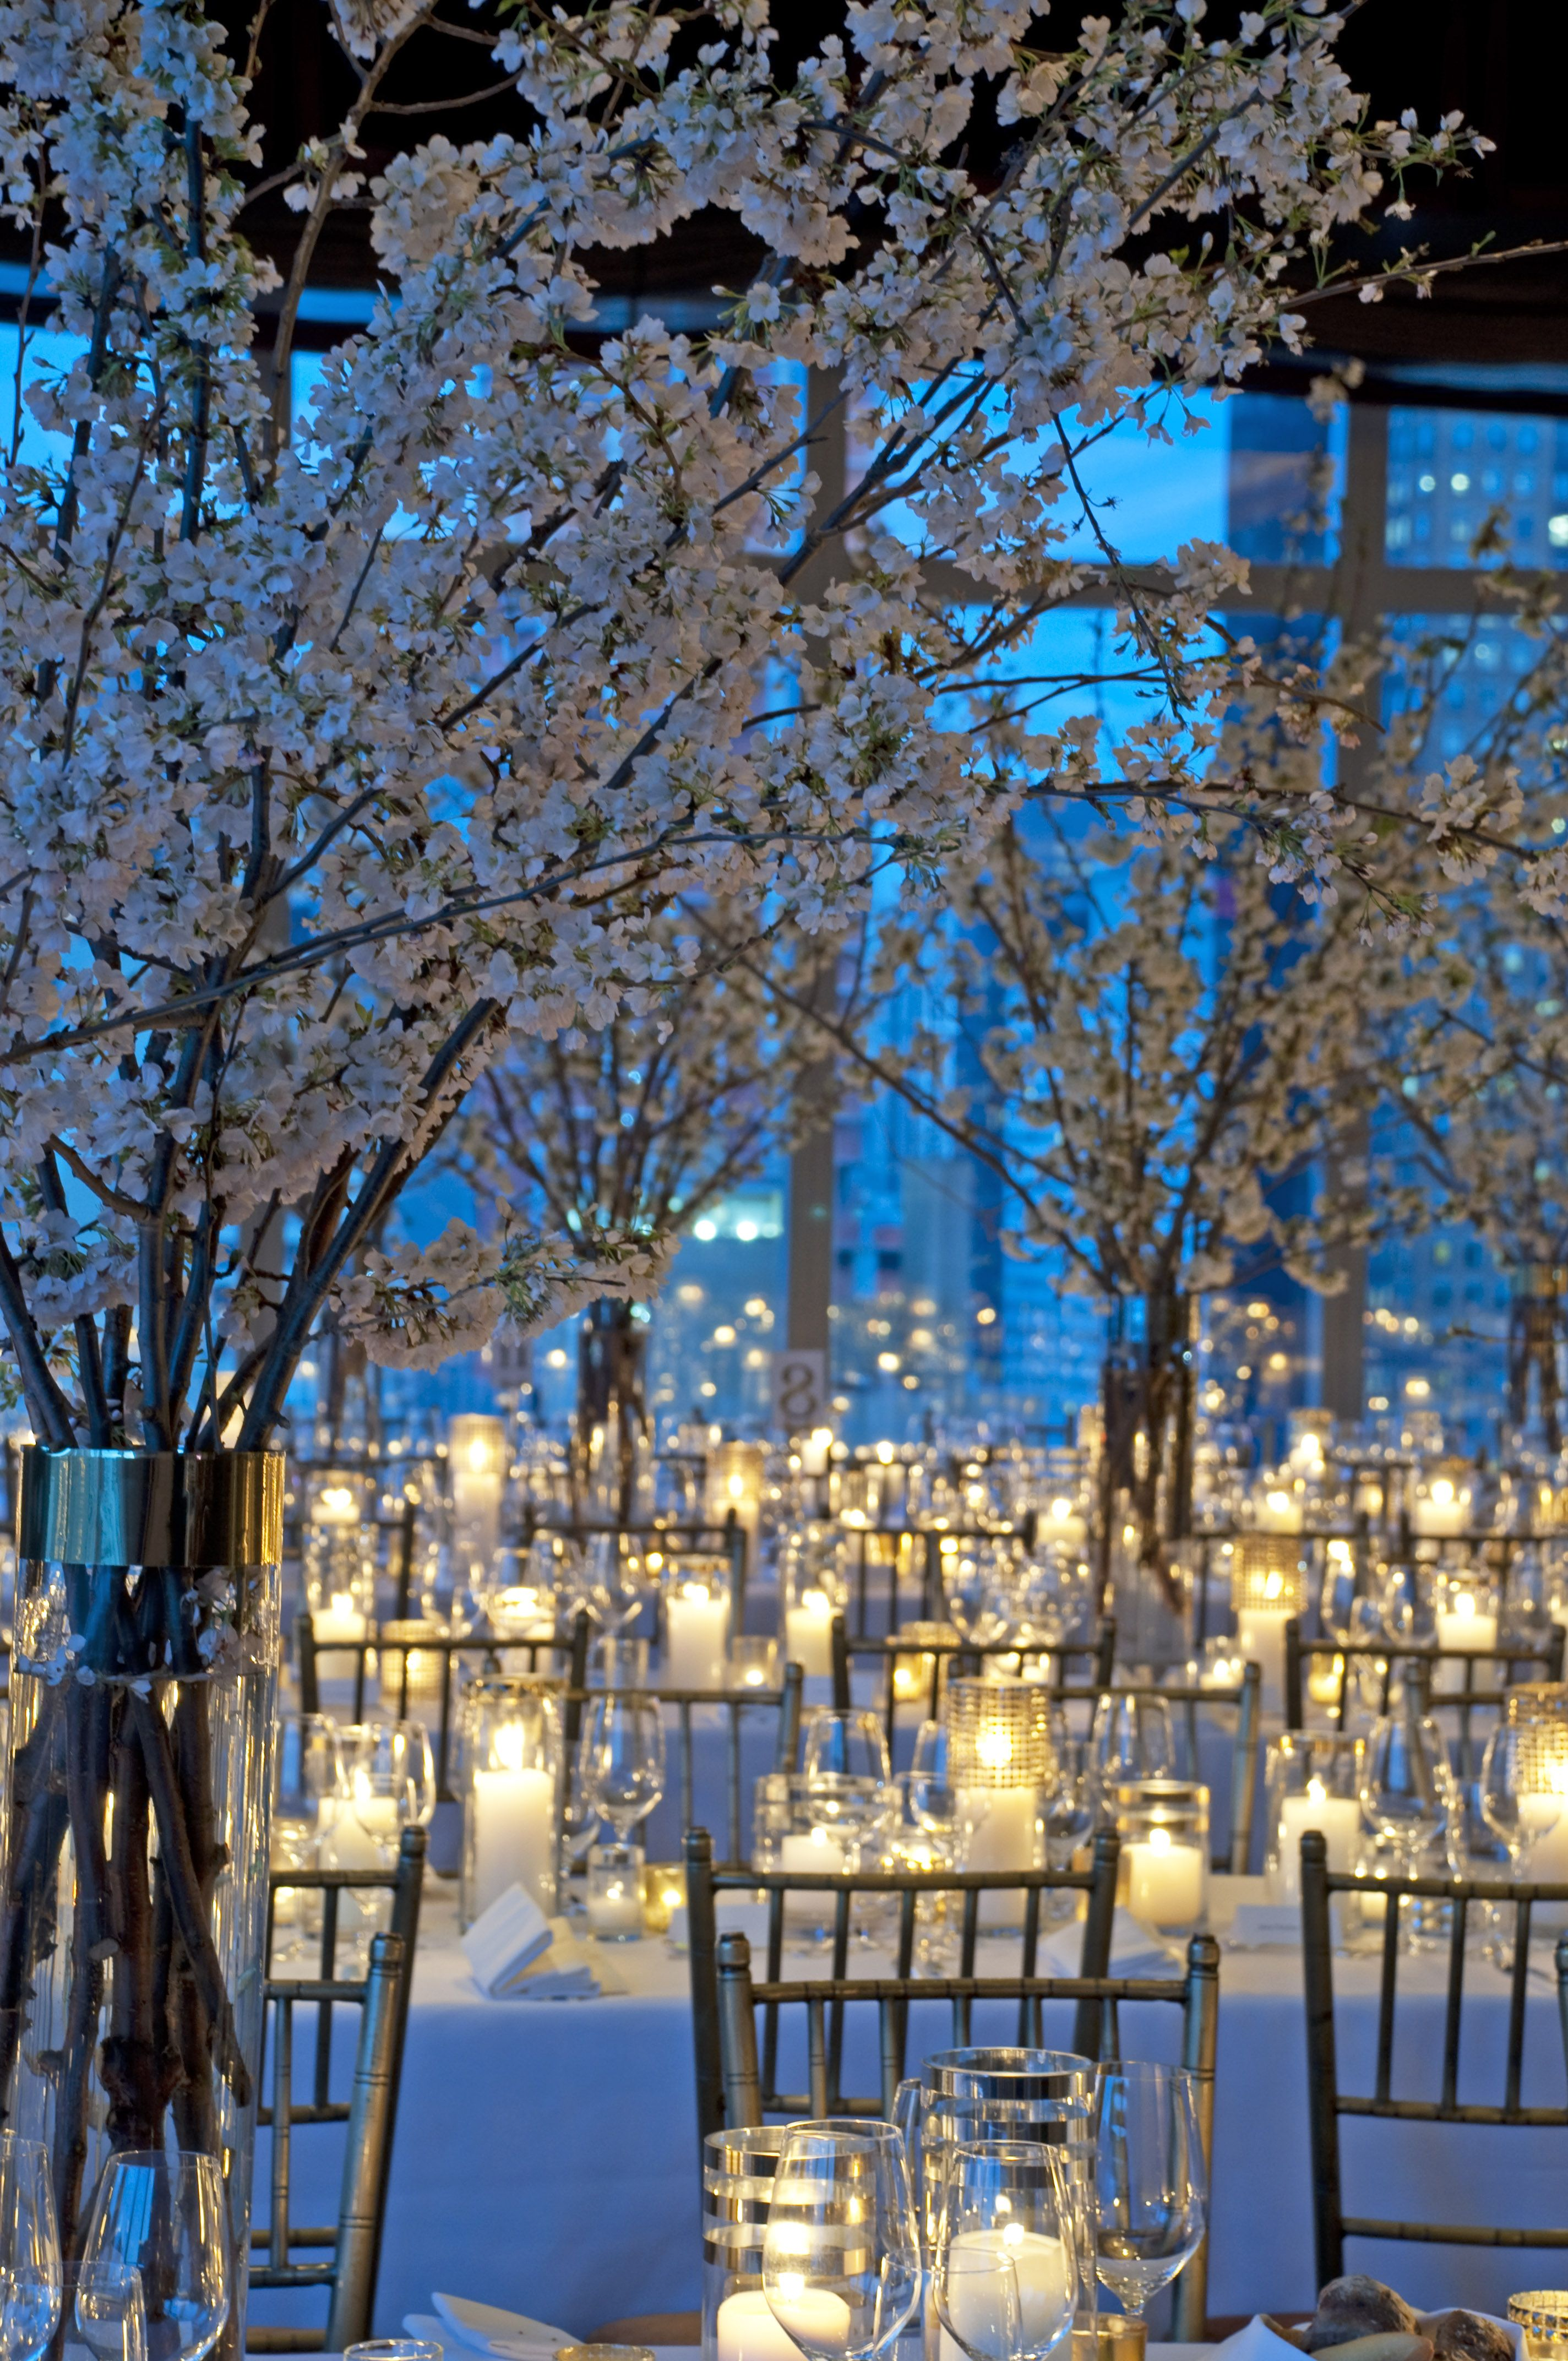 Winter Wonderland Delight Flowering Branches And Lots Of Candlelight Make F With Images Wonderland Wedding Theme Winter Wonderland Wedding Theme Winter Wonderland Wedding